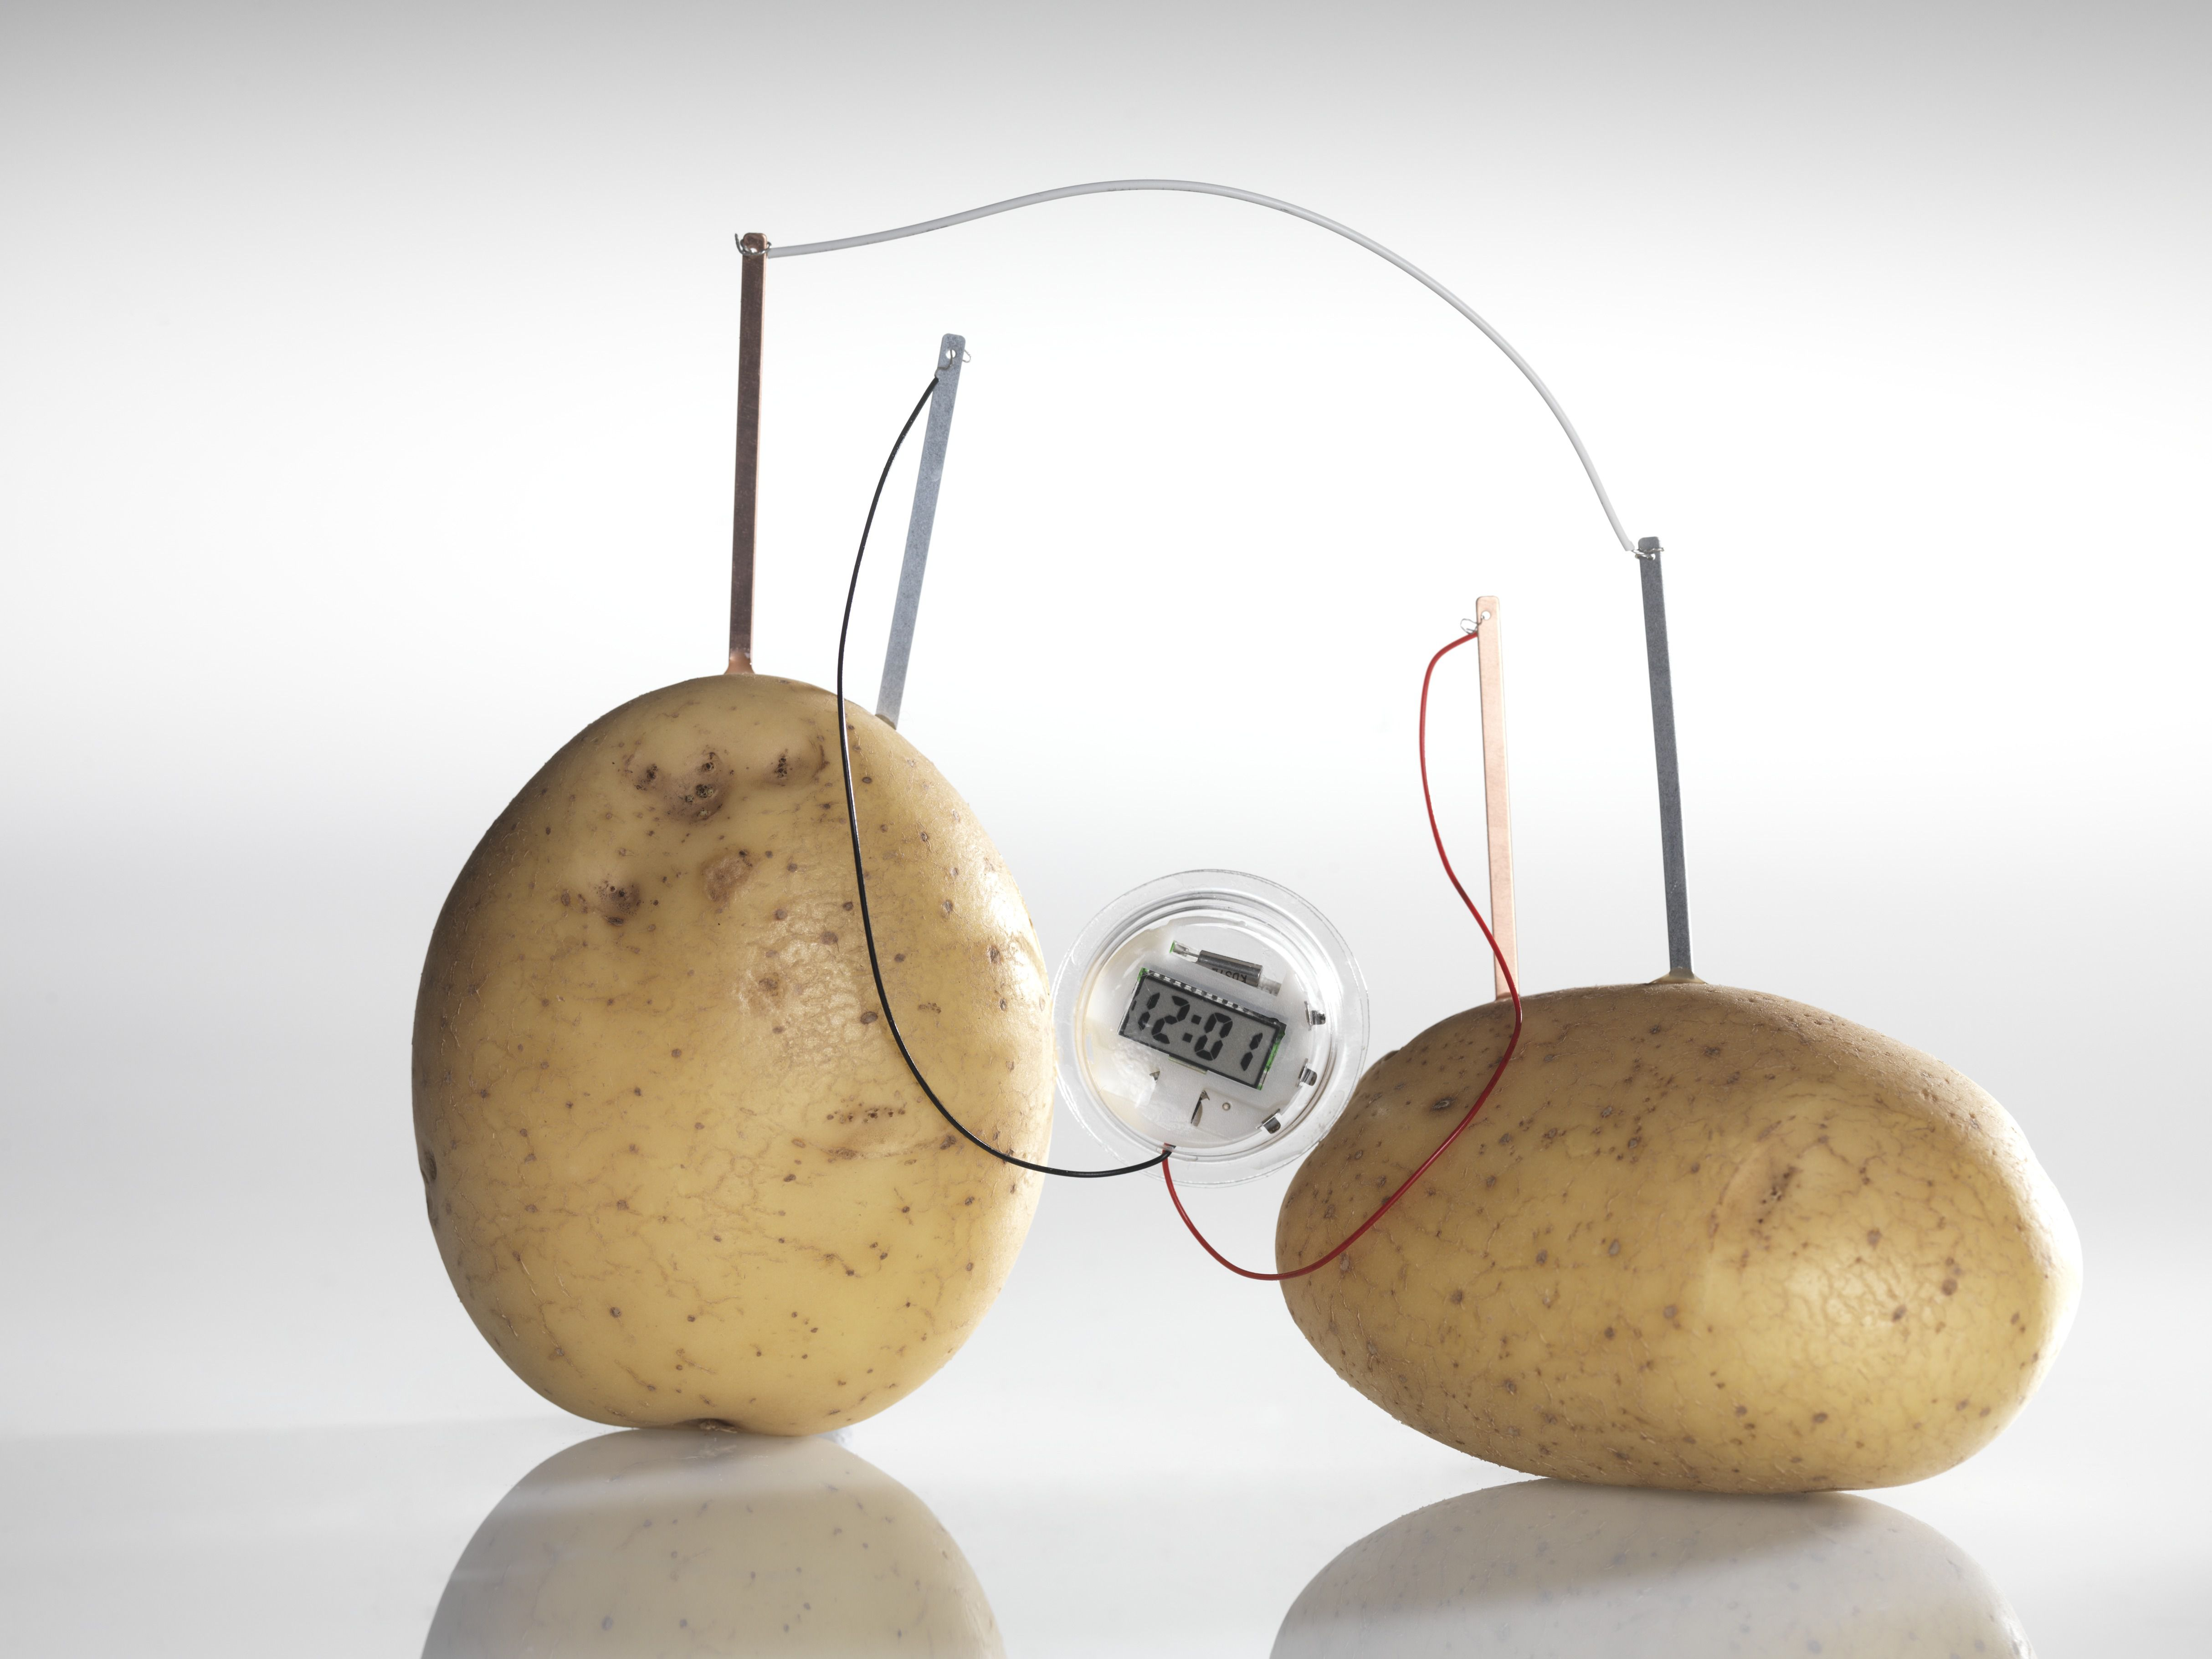 Potato Clock Diagram Battery How To Make A Power An Led 4855x3641